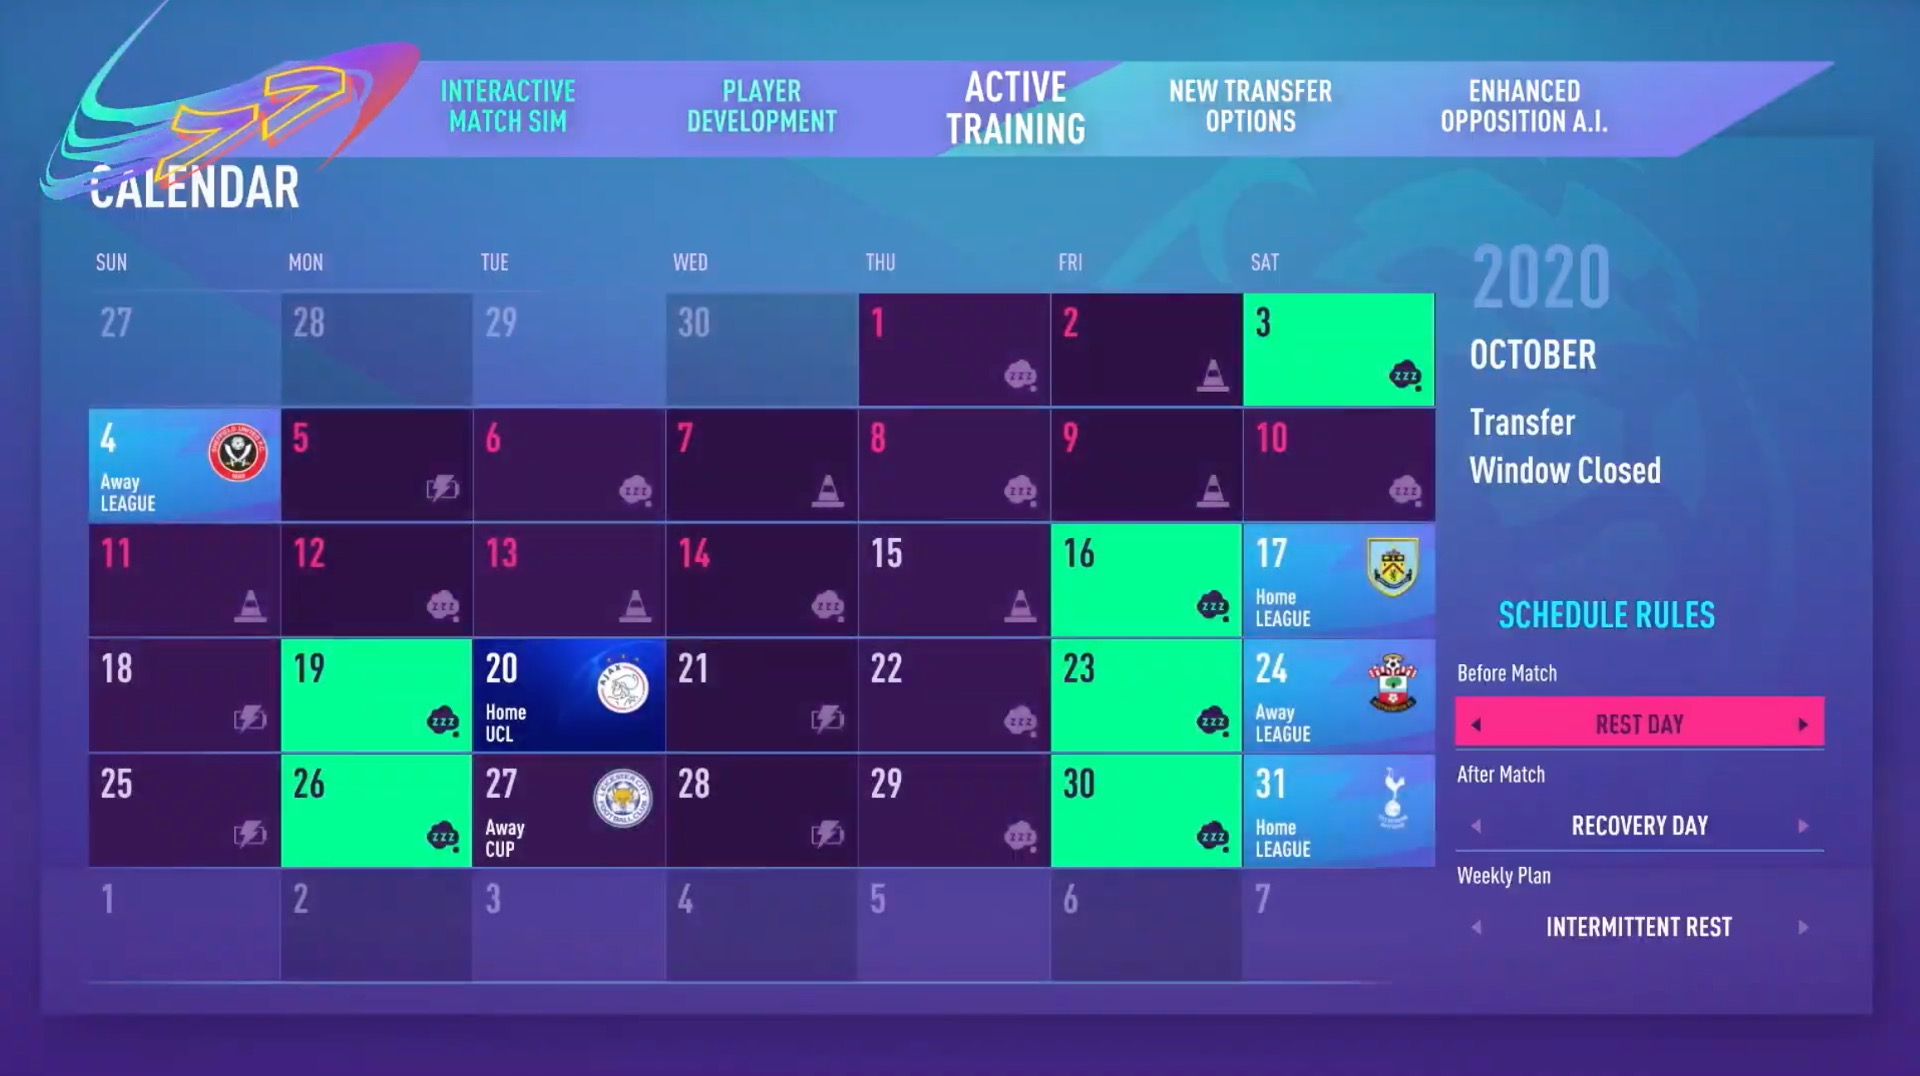 FIFA 21 Career mode schedule